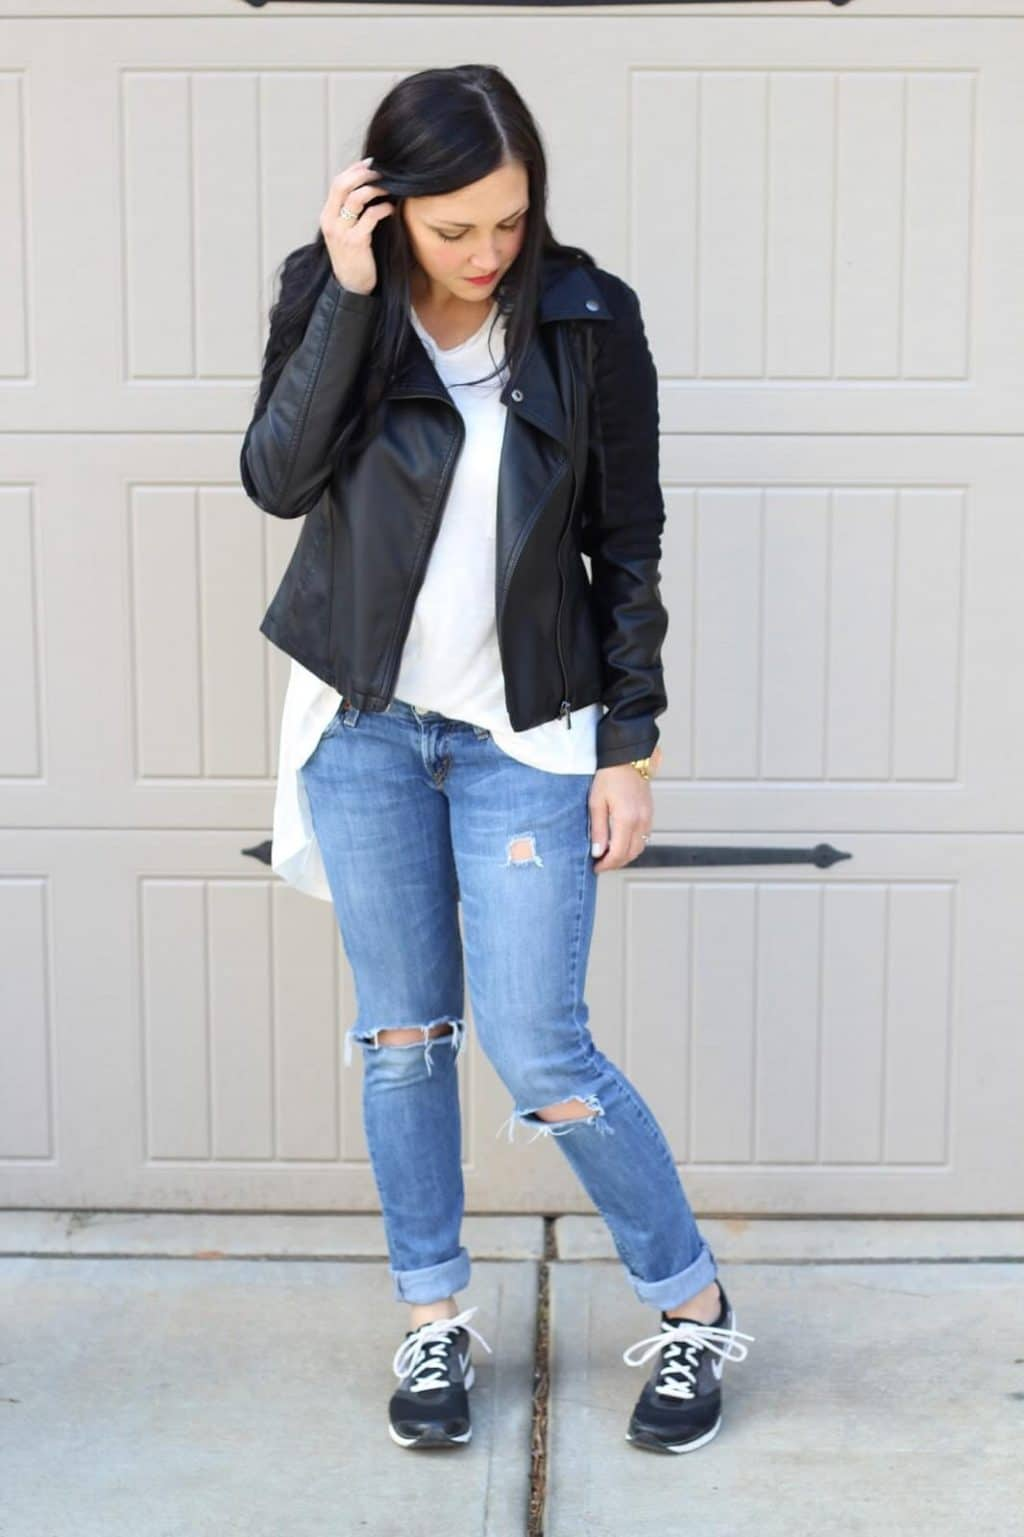 How to wear leather casually